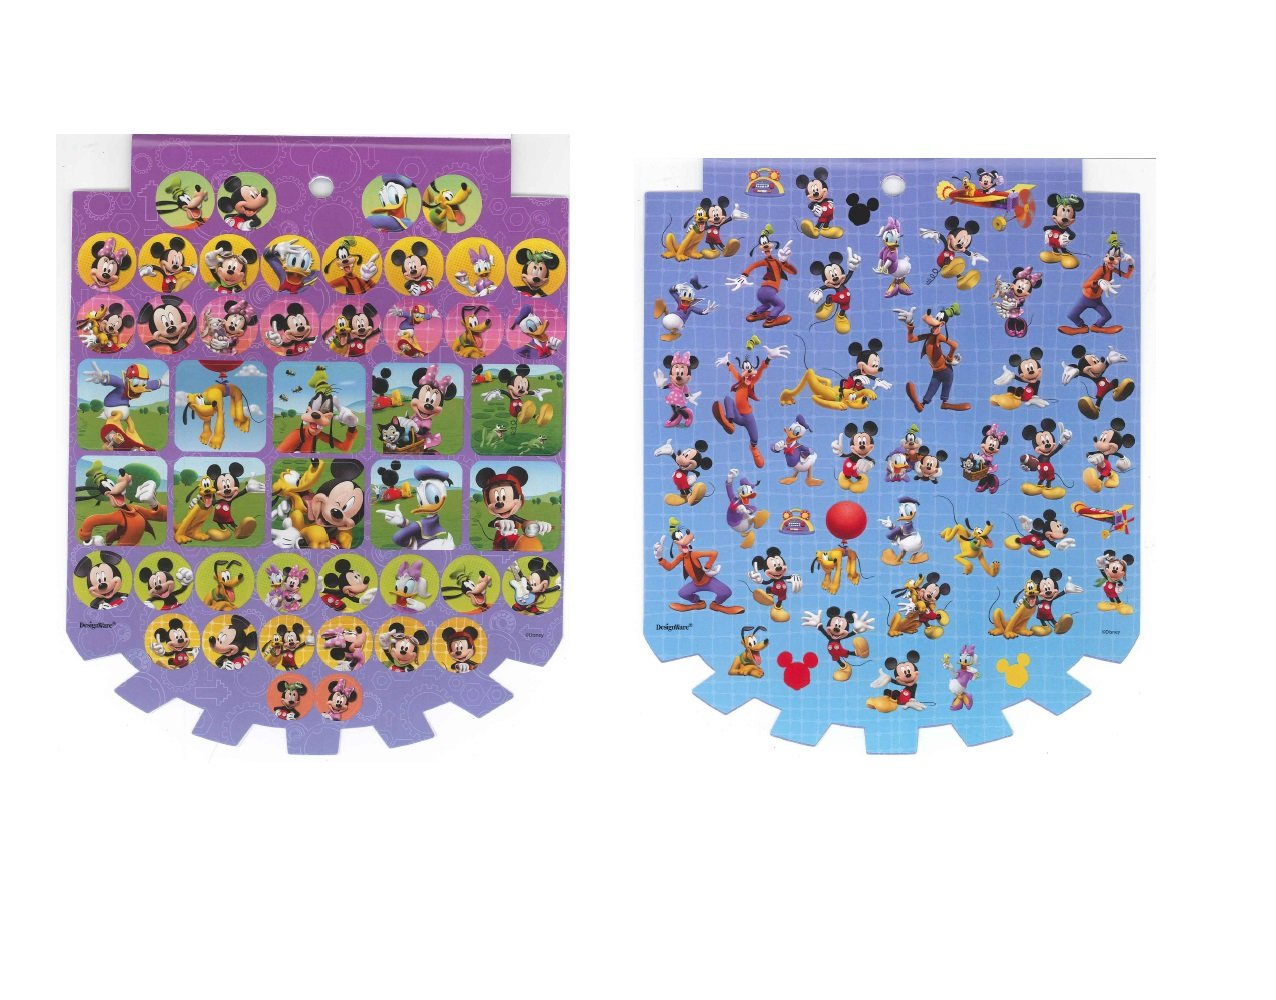 -1 PACK Design-ware SG/_B06ZZVWFYZ/_US Disney Mickey Mouse Sticker Book for Kids over 350 stickers